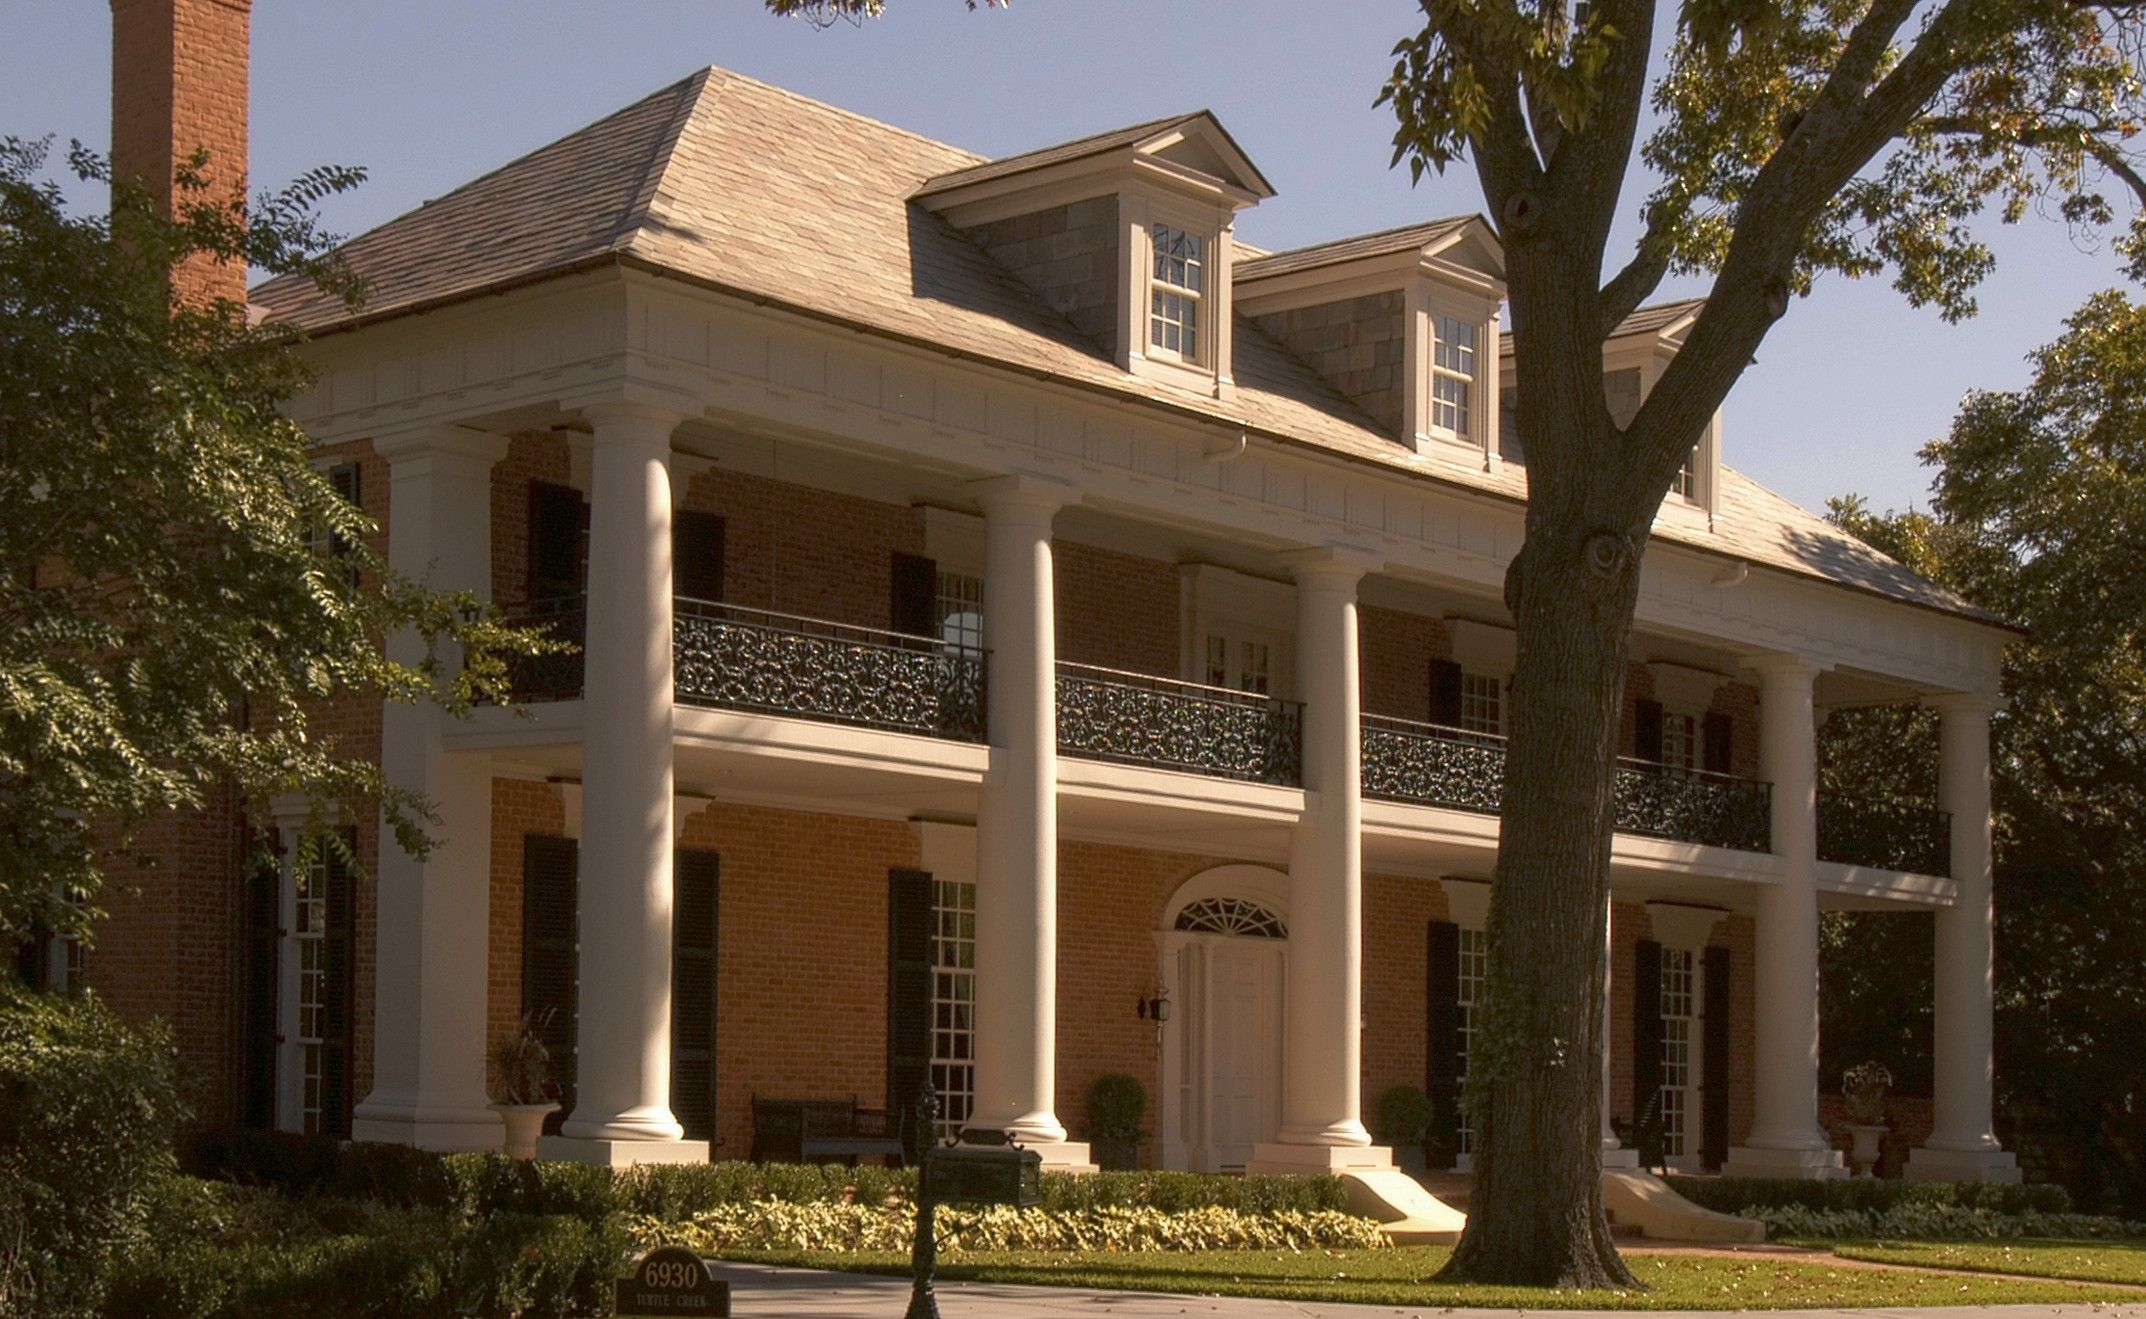 Front Colonnade, With Front Porch And Deck Balcony Of A Greek Revival Lower Mississippi  Valley